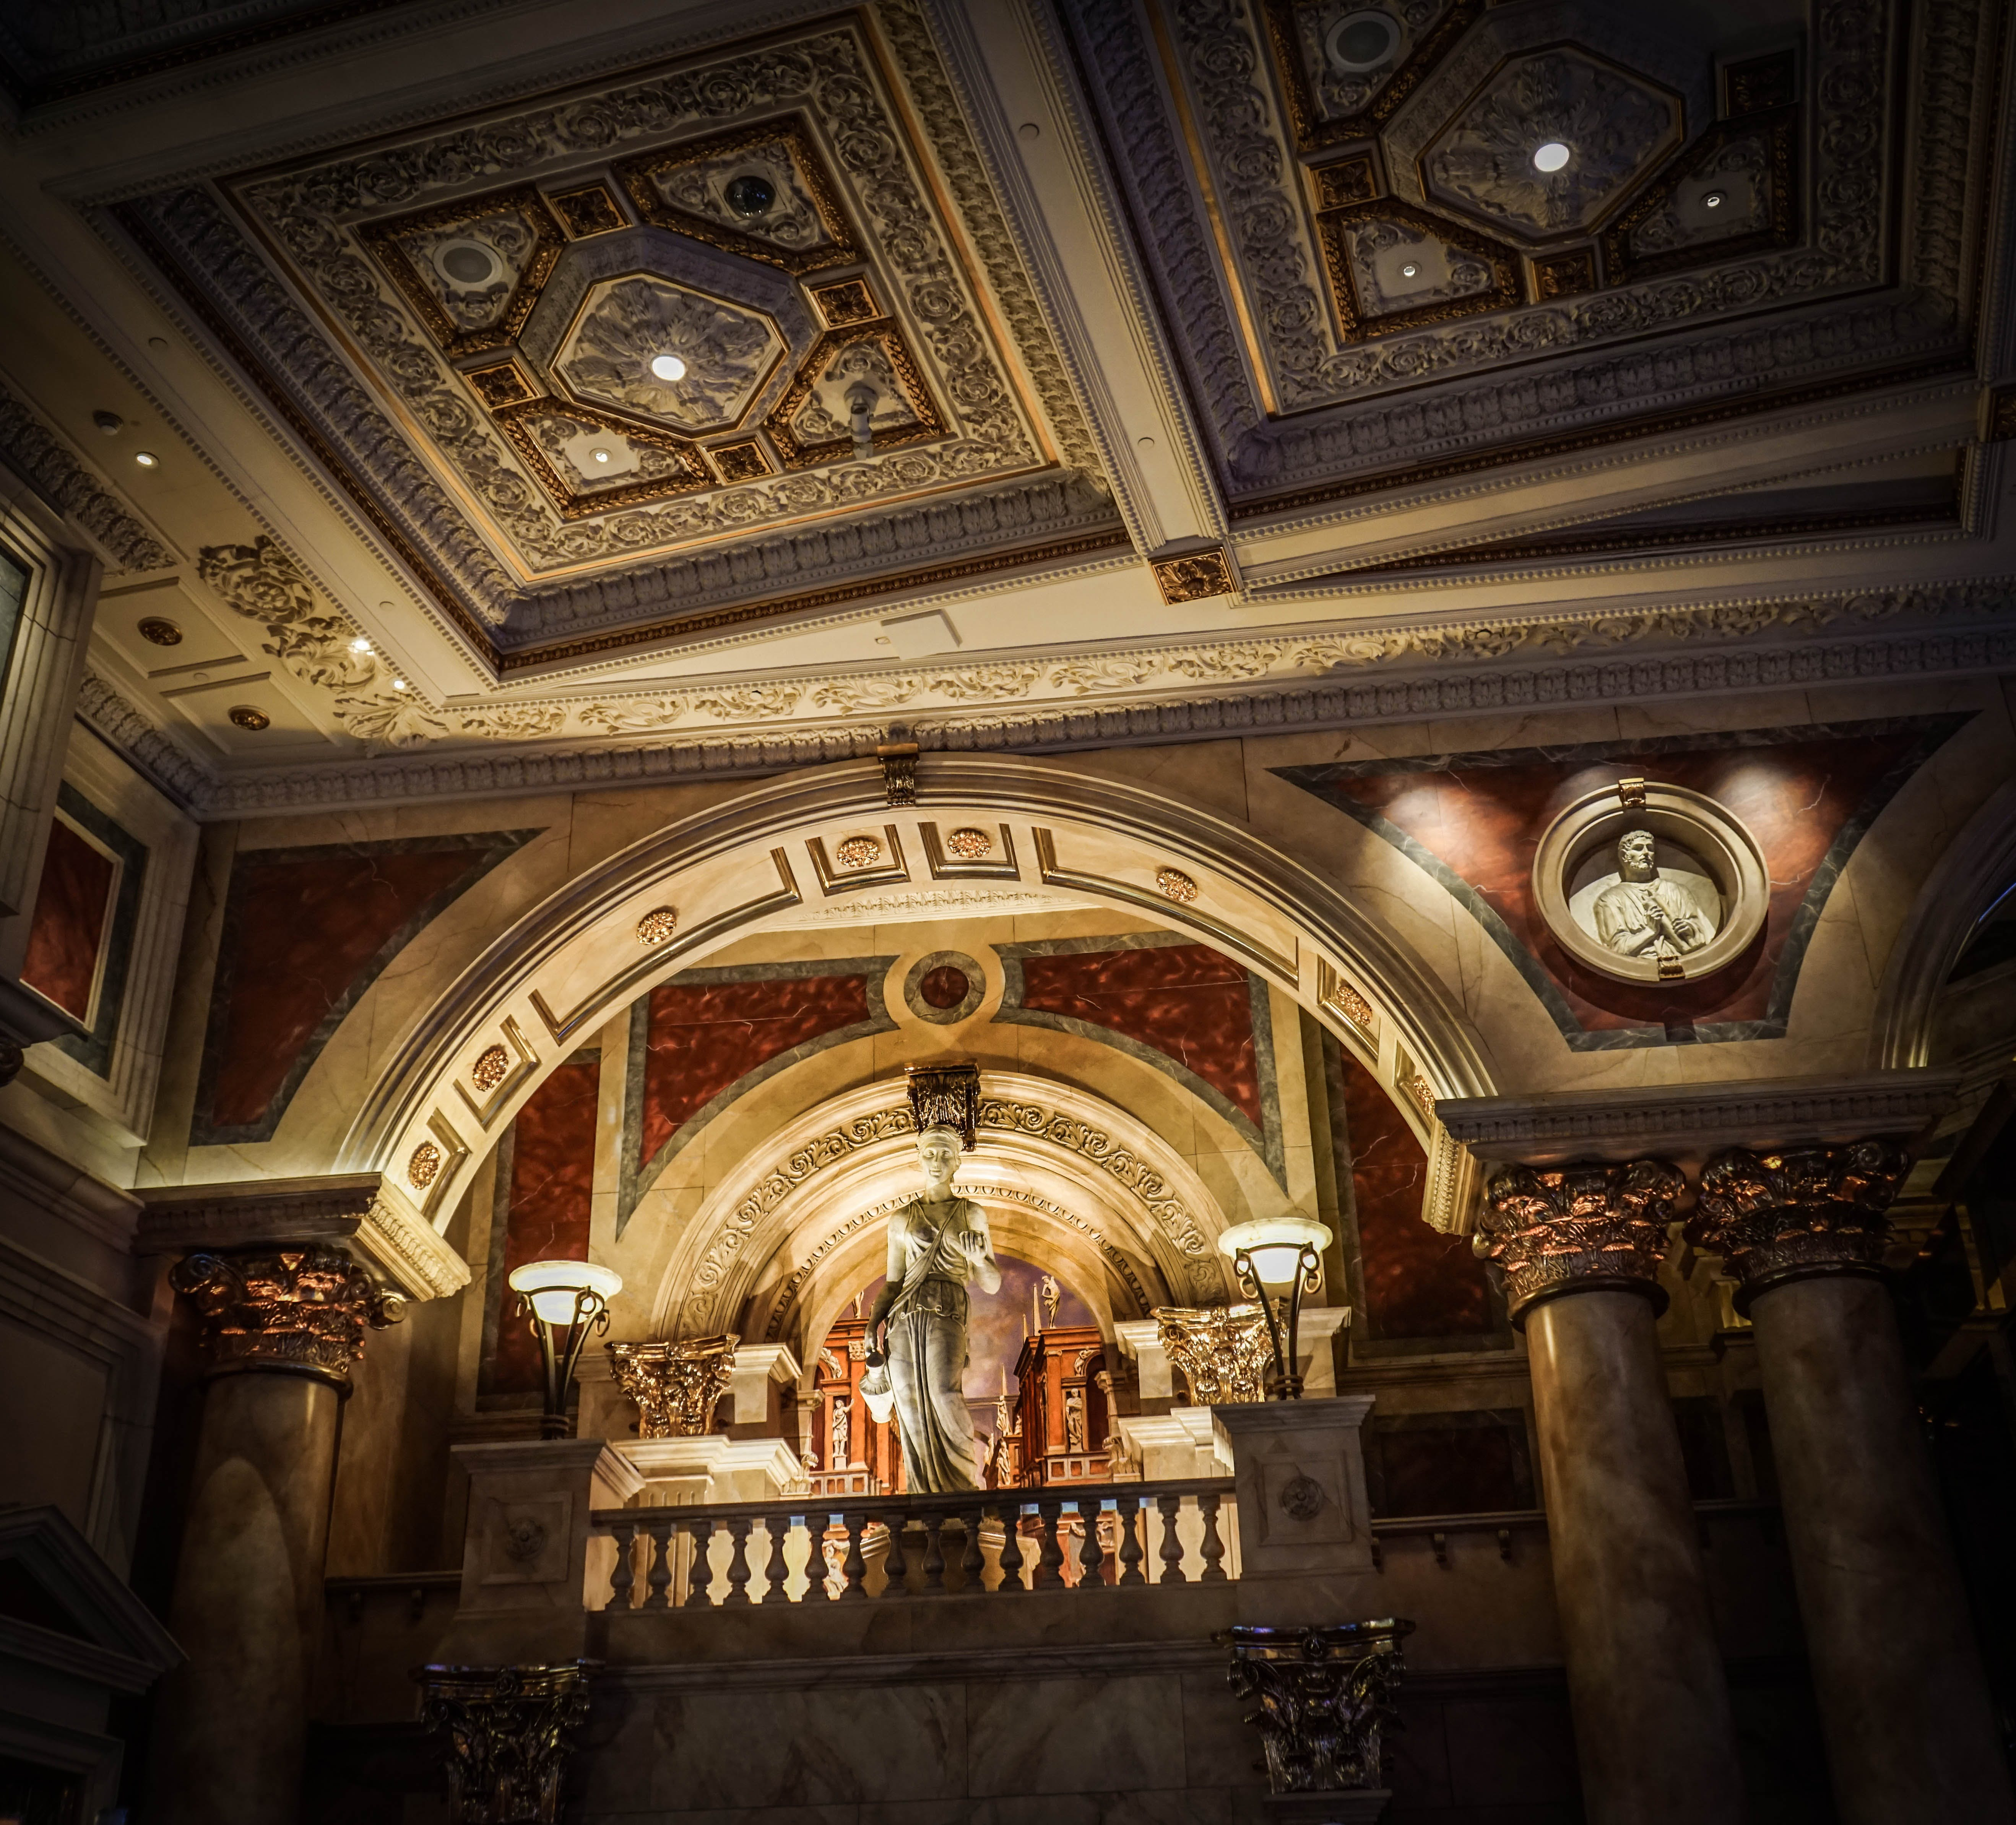 architecture, attraction, caesars palace